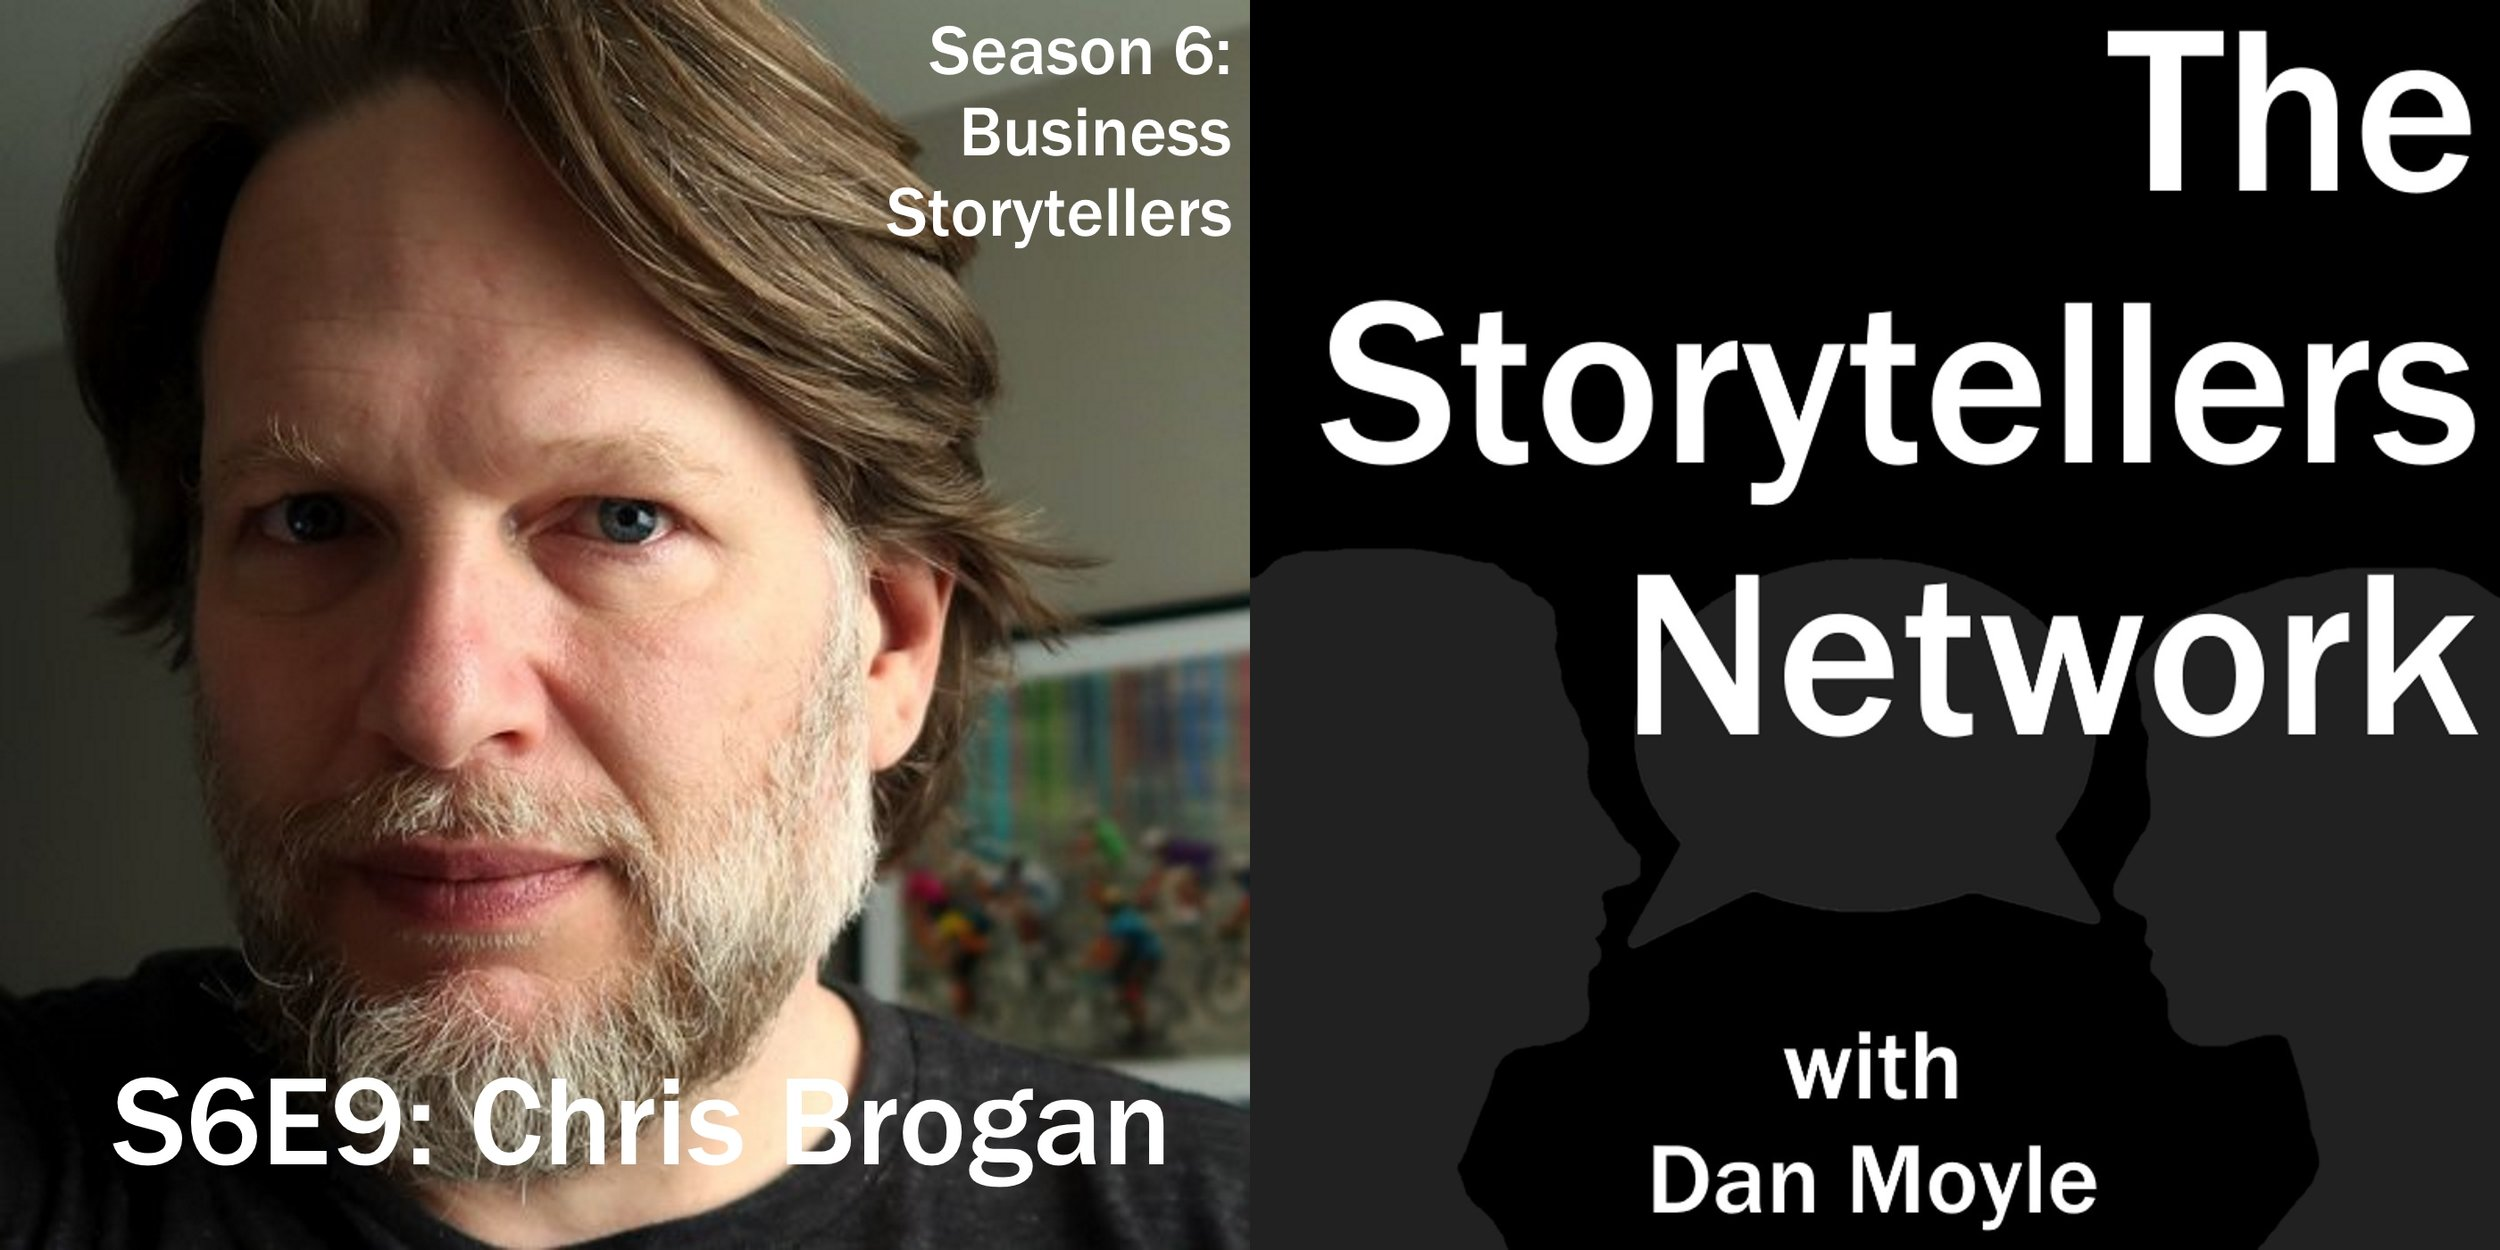 09 Chris Brogan Episode Artwork.jpg